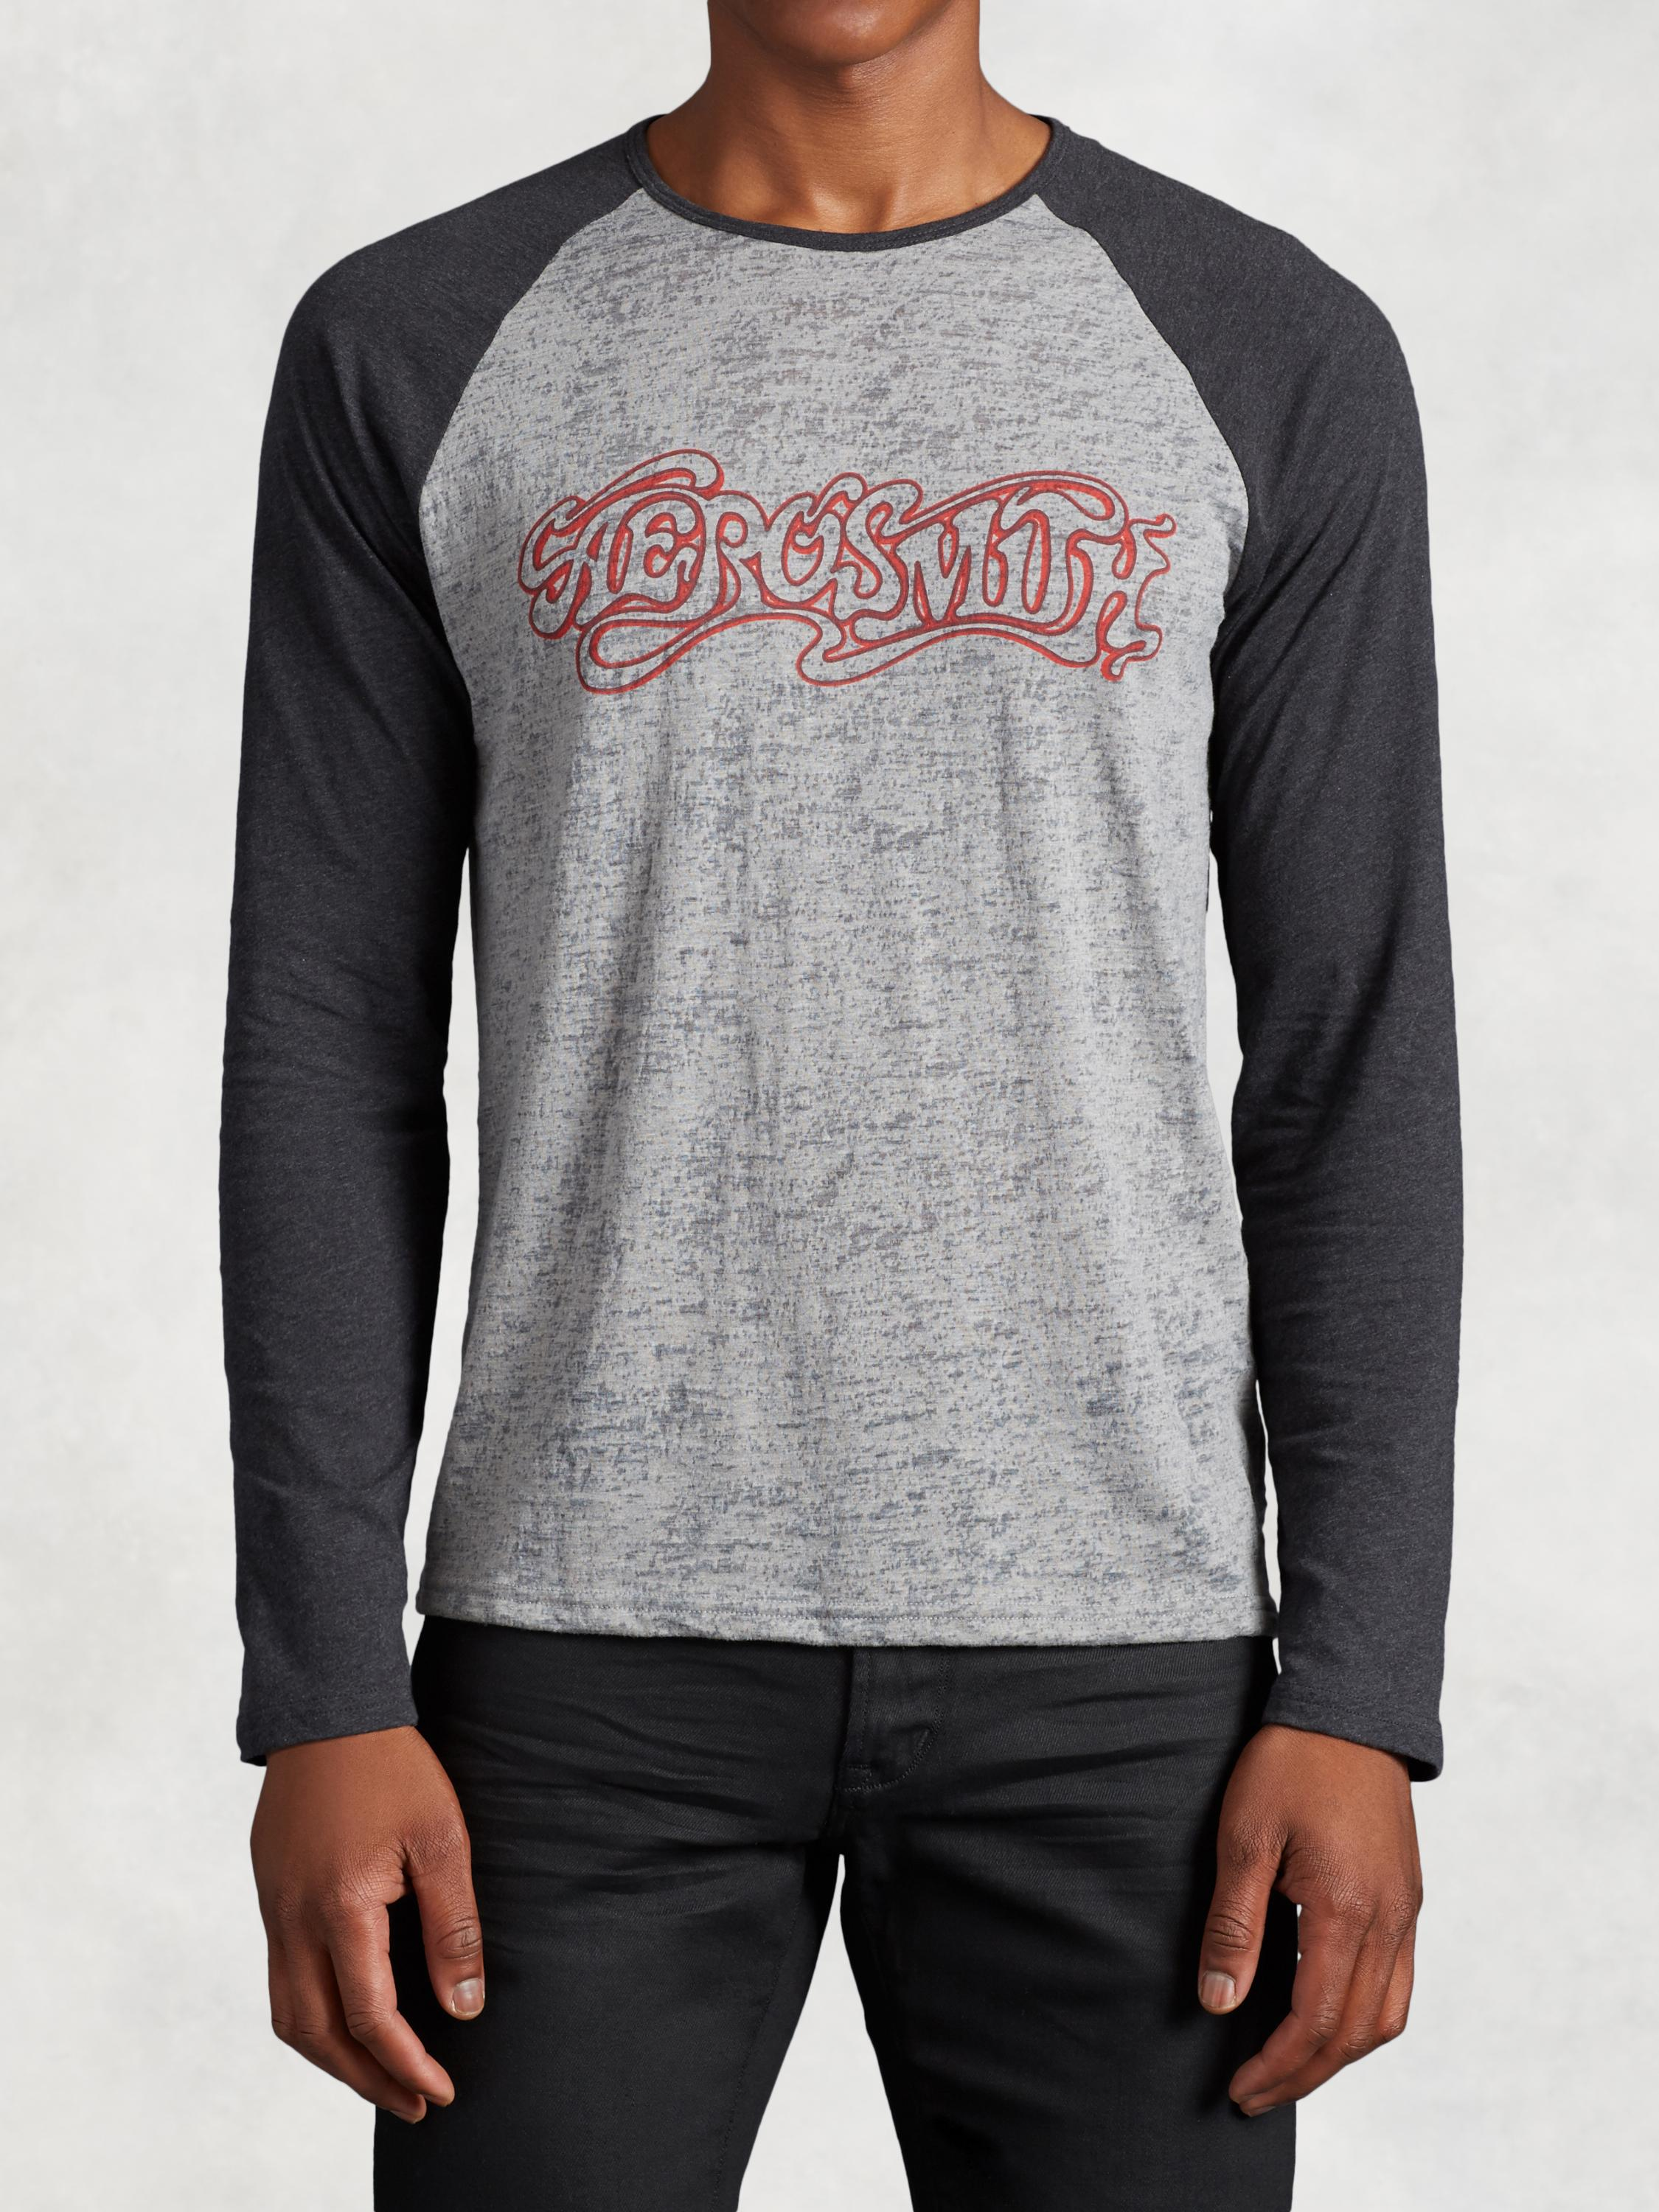 Aerosmith Graphic Long Sleeve